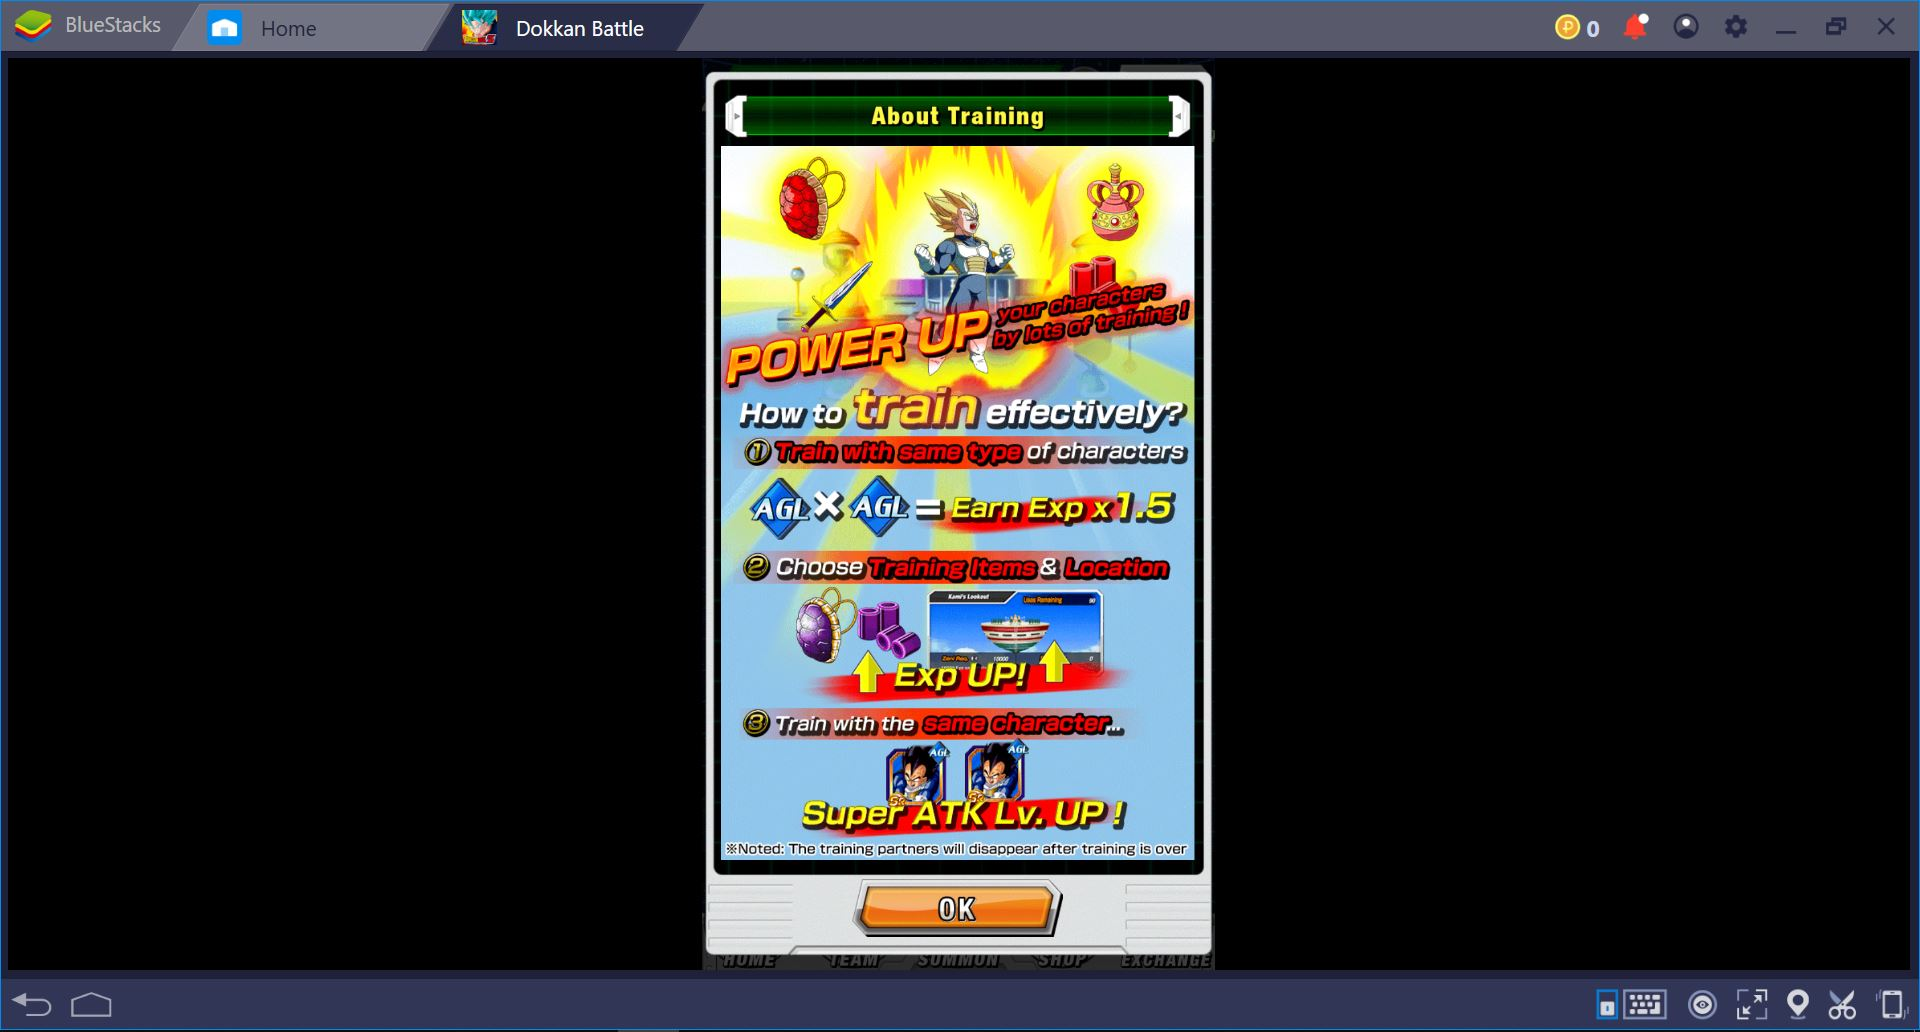 Tips and Tricks Guide for Dragon Ball Z Dokkan Battle